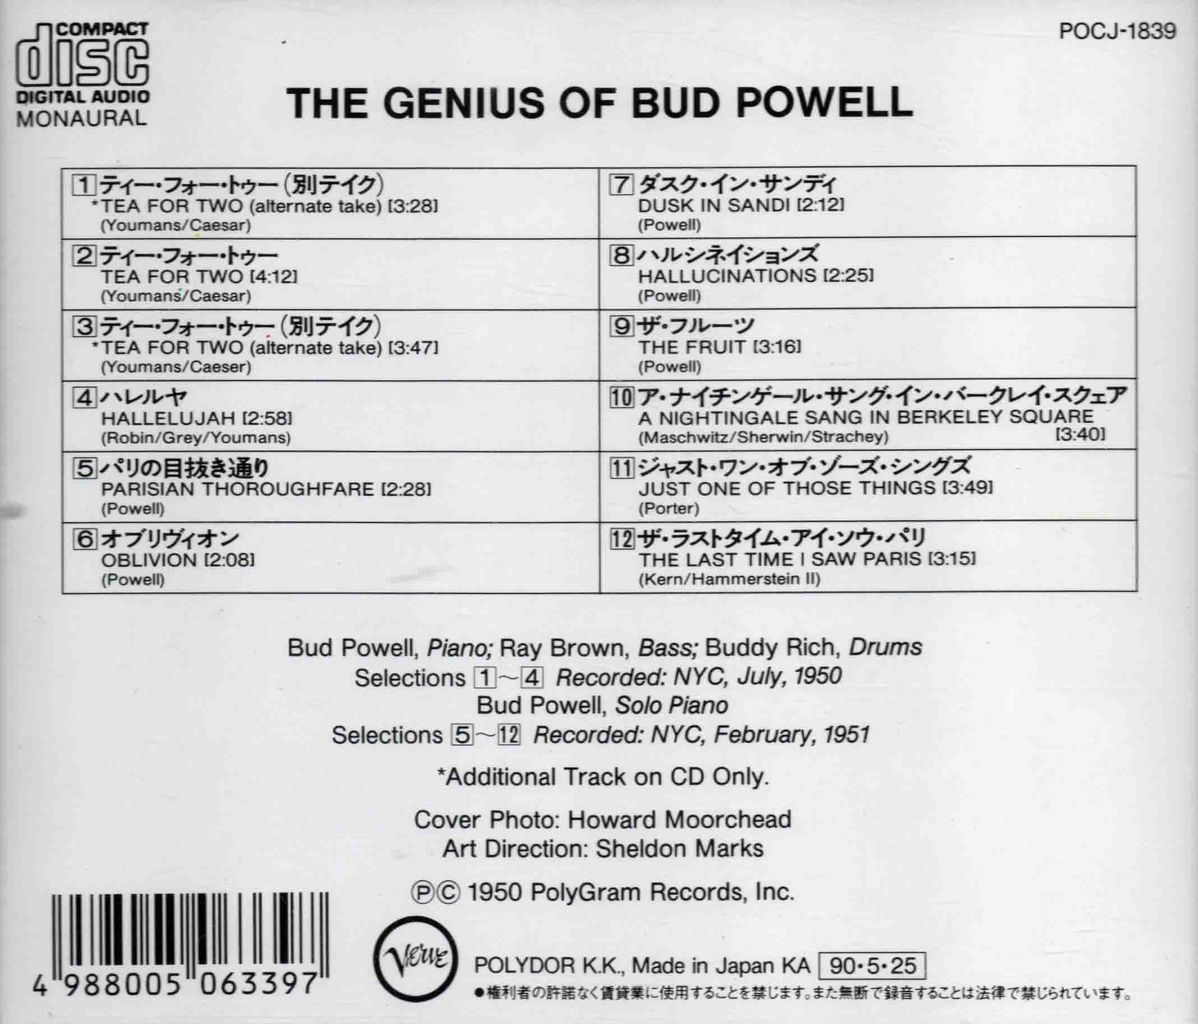 THE GENIUS OF BUD POWELL-2